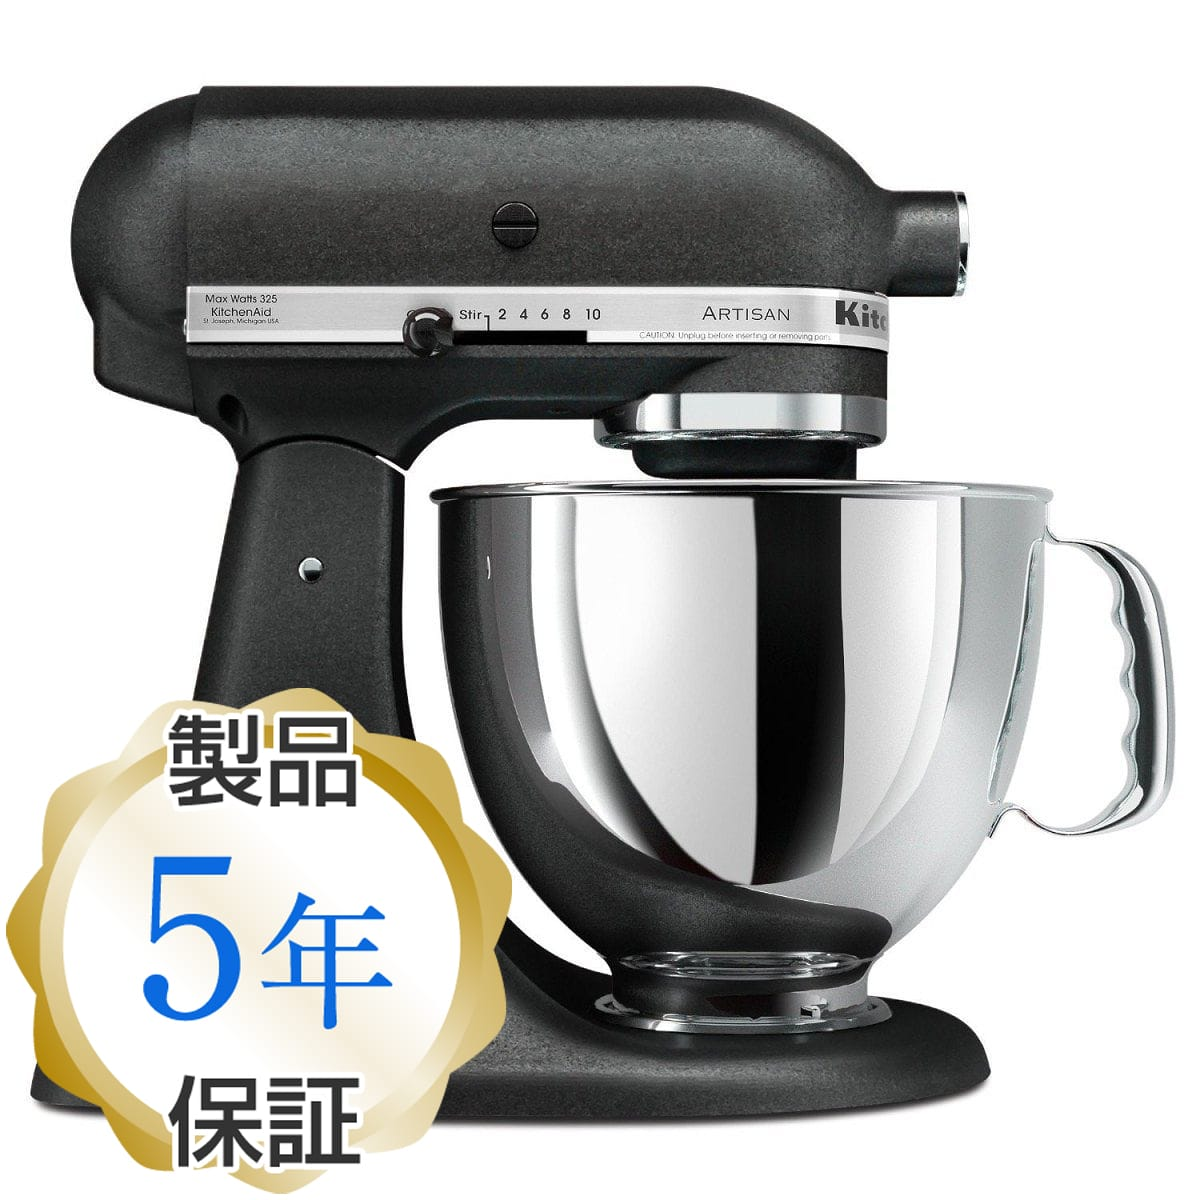 Kitchen aid stands mixer artisan 4.8L Imperial black KitchenAid Artisan  5-Quart Stand Mixers KSM150PSBK Imperial Black household appliance